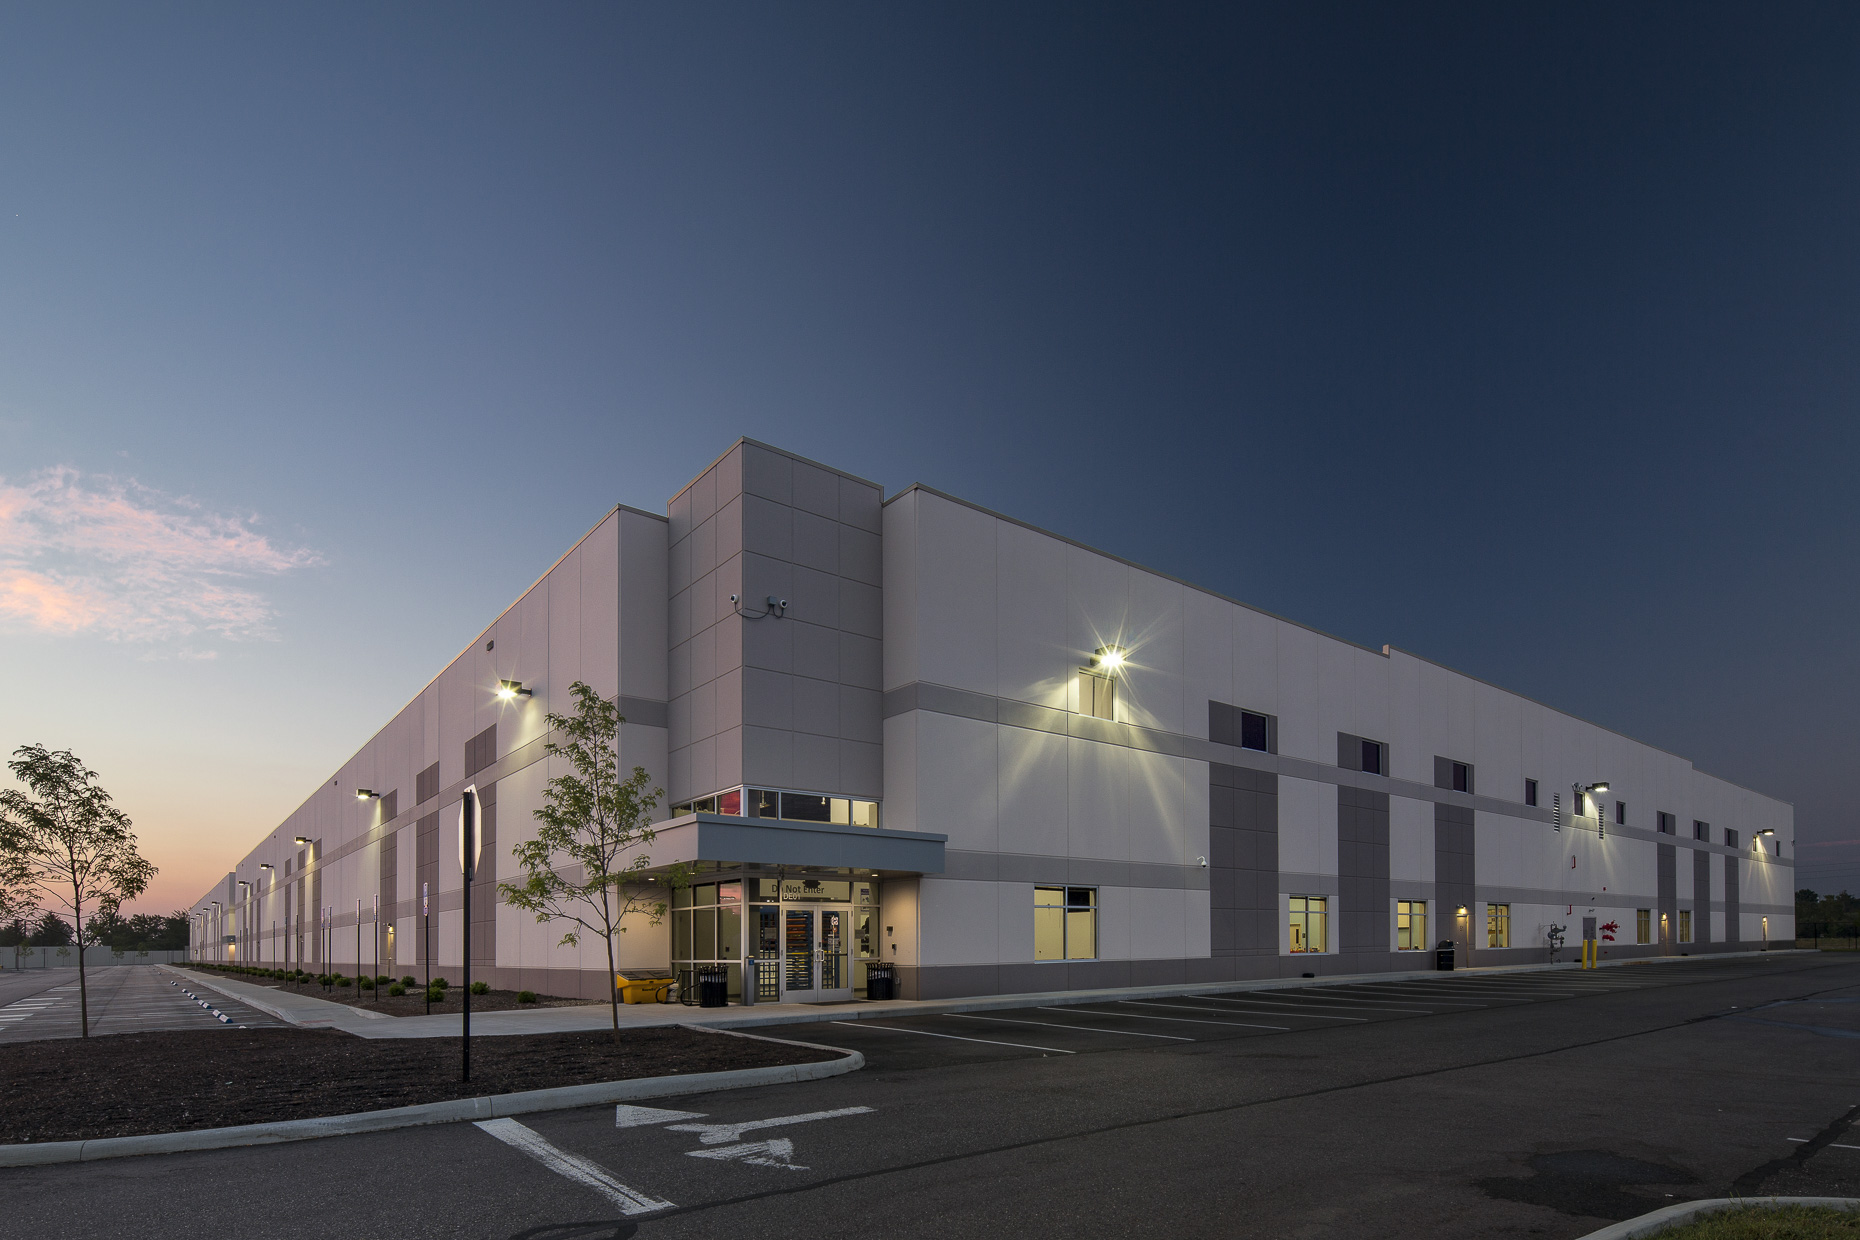 Amazon CLE-5 Fulfillment Center by Arco National Construction photographed by Lauren K Davis based in Columbus, Ohio